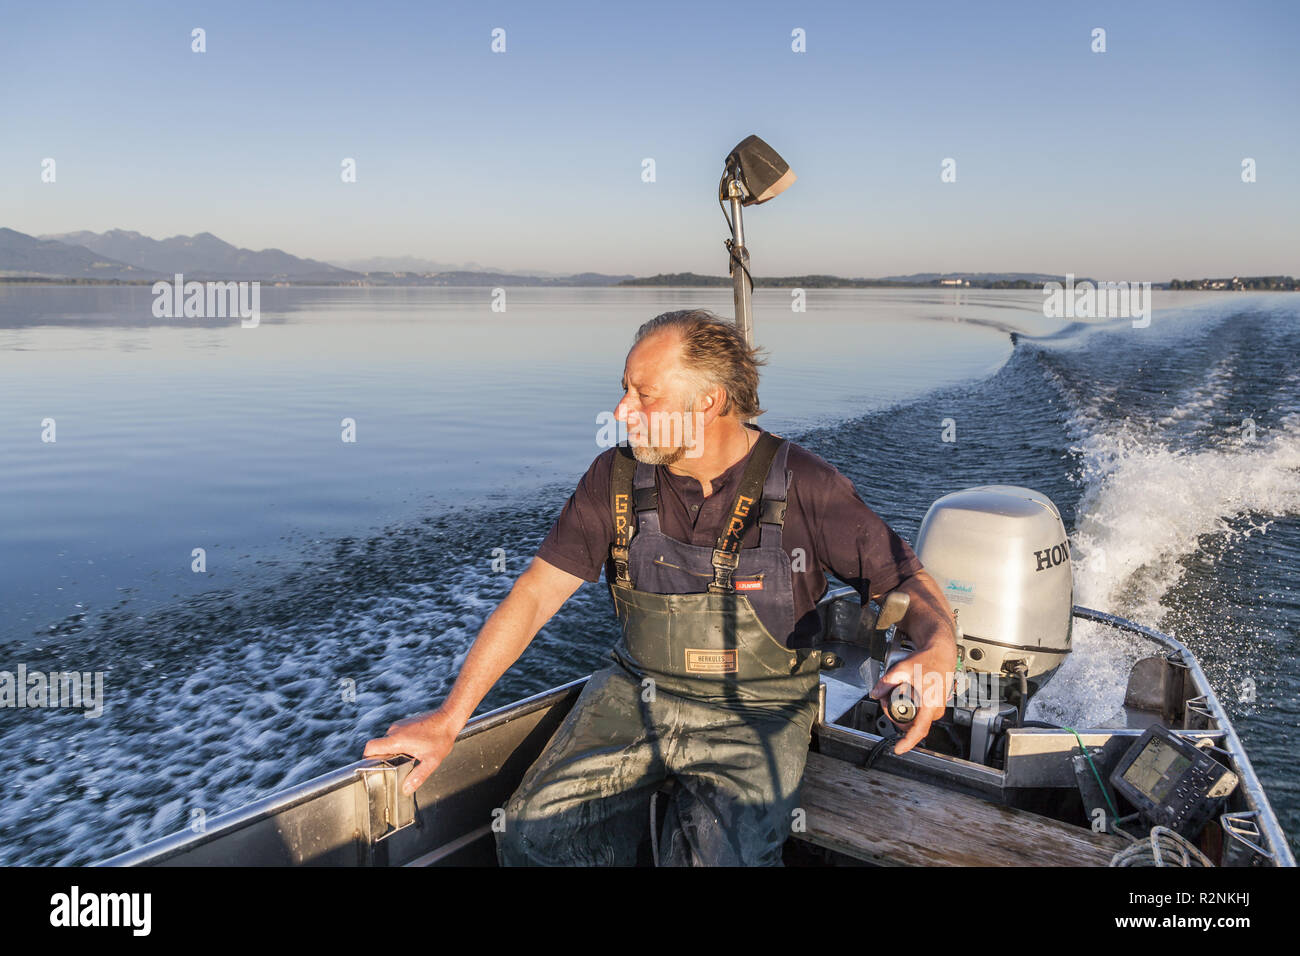 Fisher Thomas Lex from Fraueninsel on a cruise across Chiemsee, Frauenchiemsee, Chiemgau, Upper Bavaria, Bavaria, Southern Germany, Germany, Europe - Stock Image